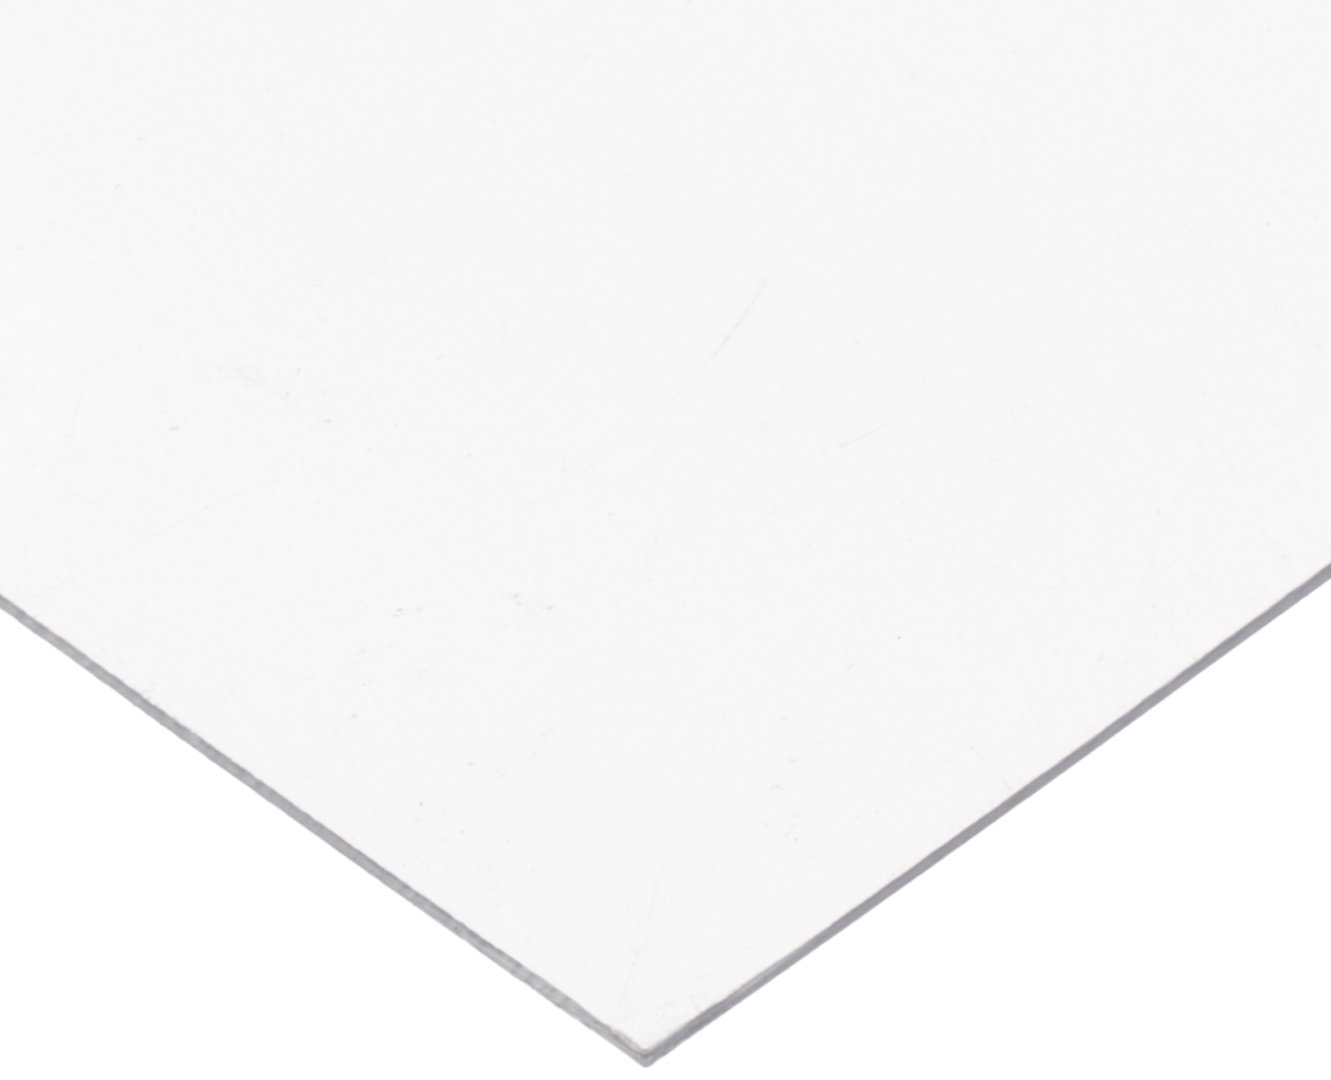 PVC (Polyvinyl Chloride) Shim Stock, Flat Sheet,  Clear, 0.040'' Thickness, 10'' Width, 20'' Length (Pack of 3) by Small Parts